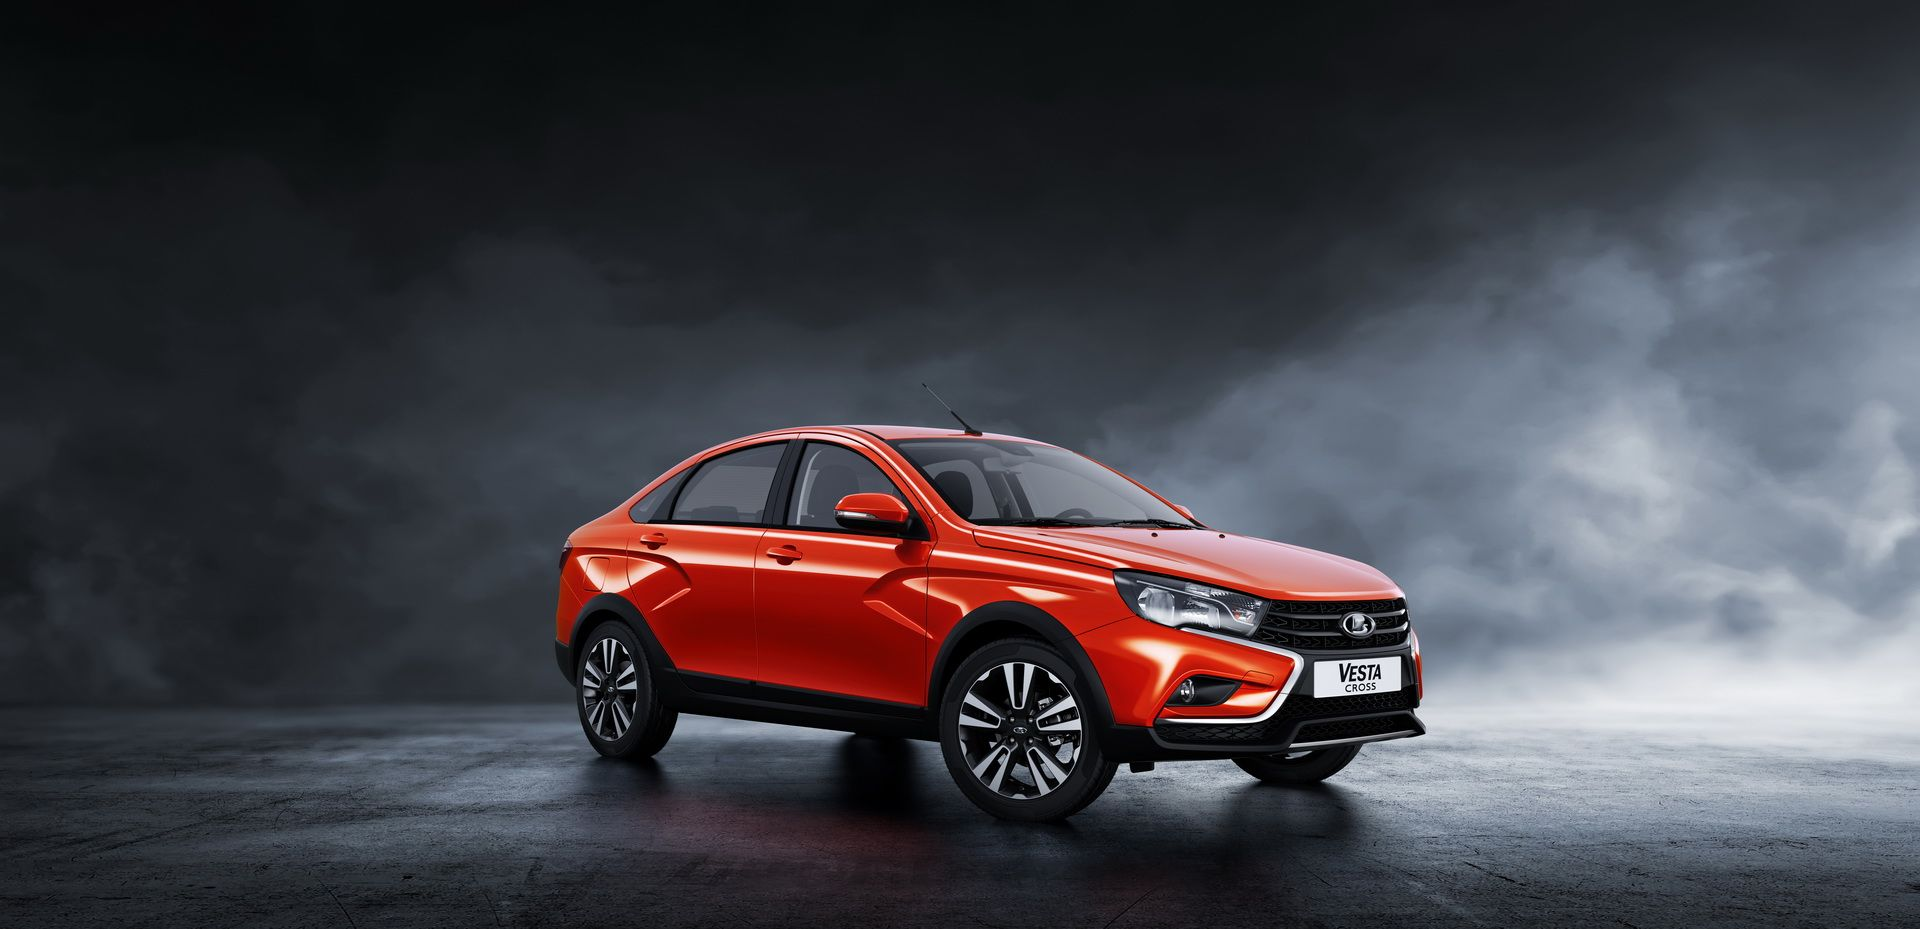 Lada_Vesta_Cross_Sedan_0000